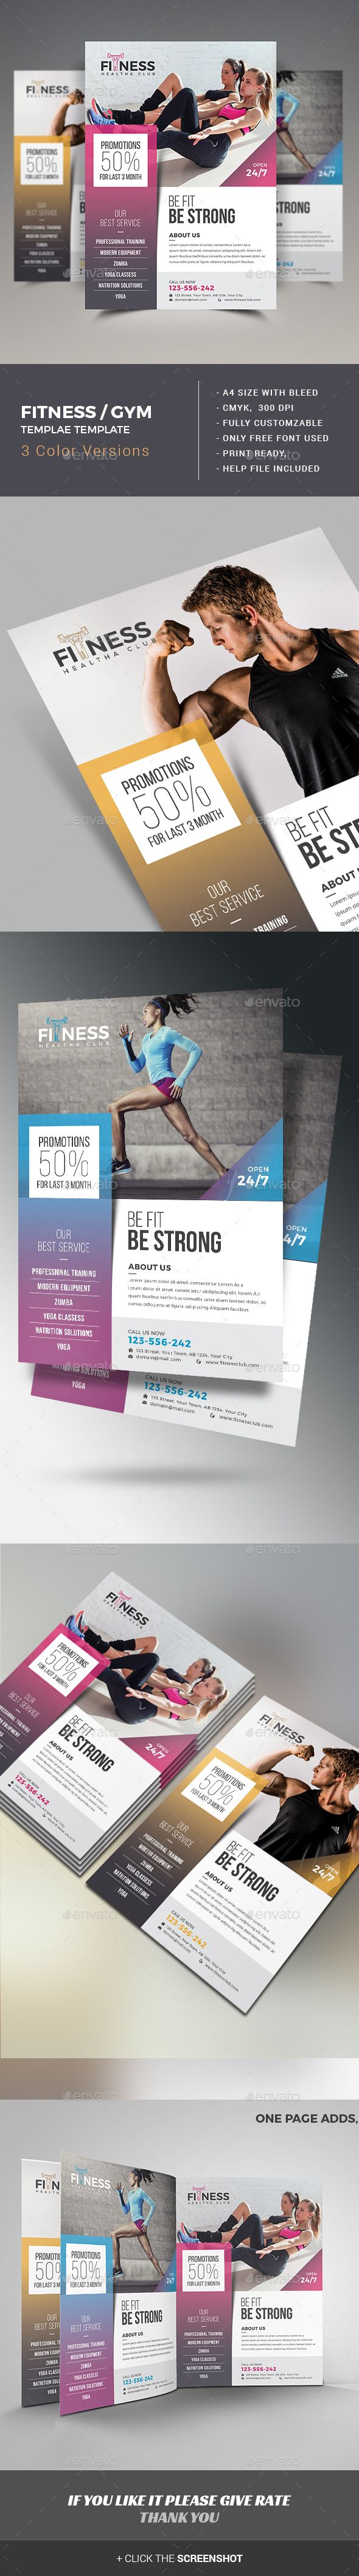 Fitness / GYM Flyer Template PSD. Download here: http://graphicriver.net/item/fitness-gym-flyer/15413270?ref=ksioks